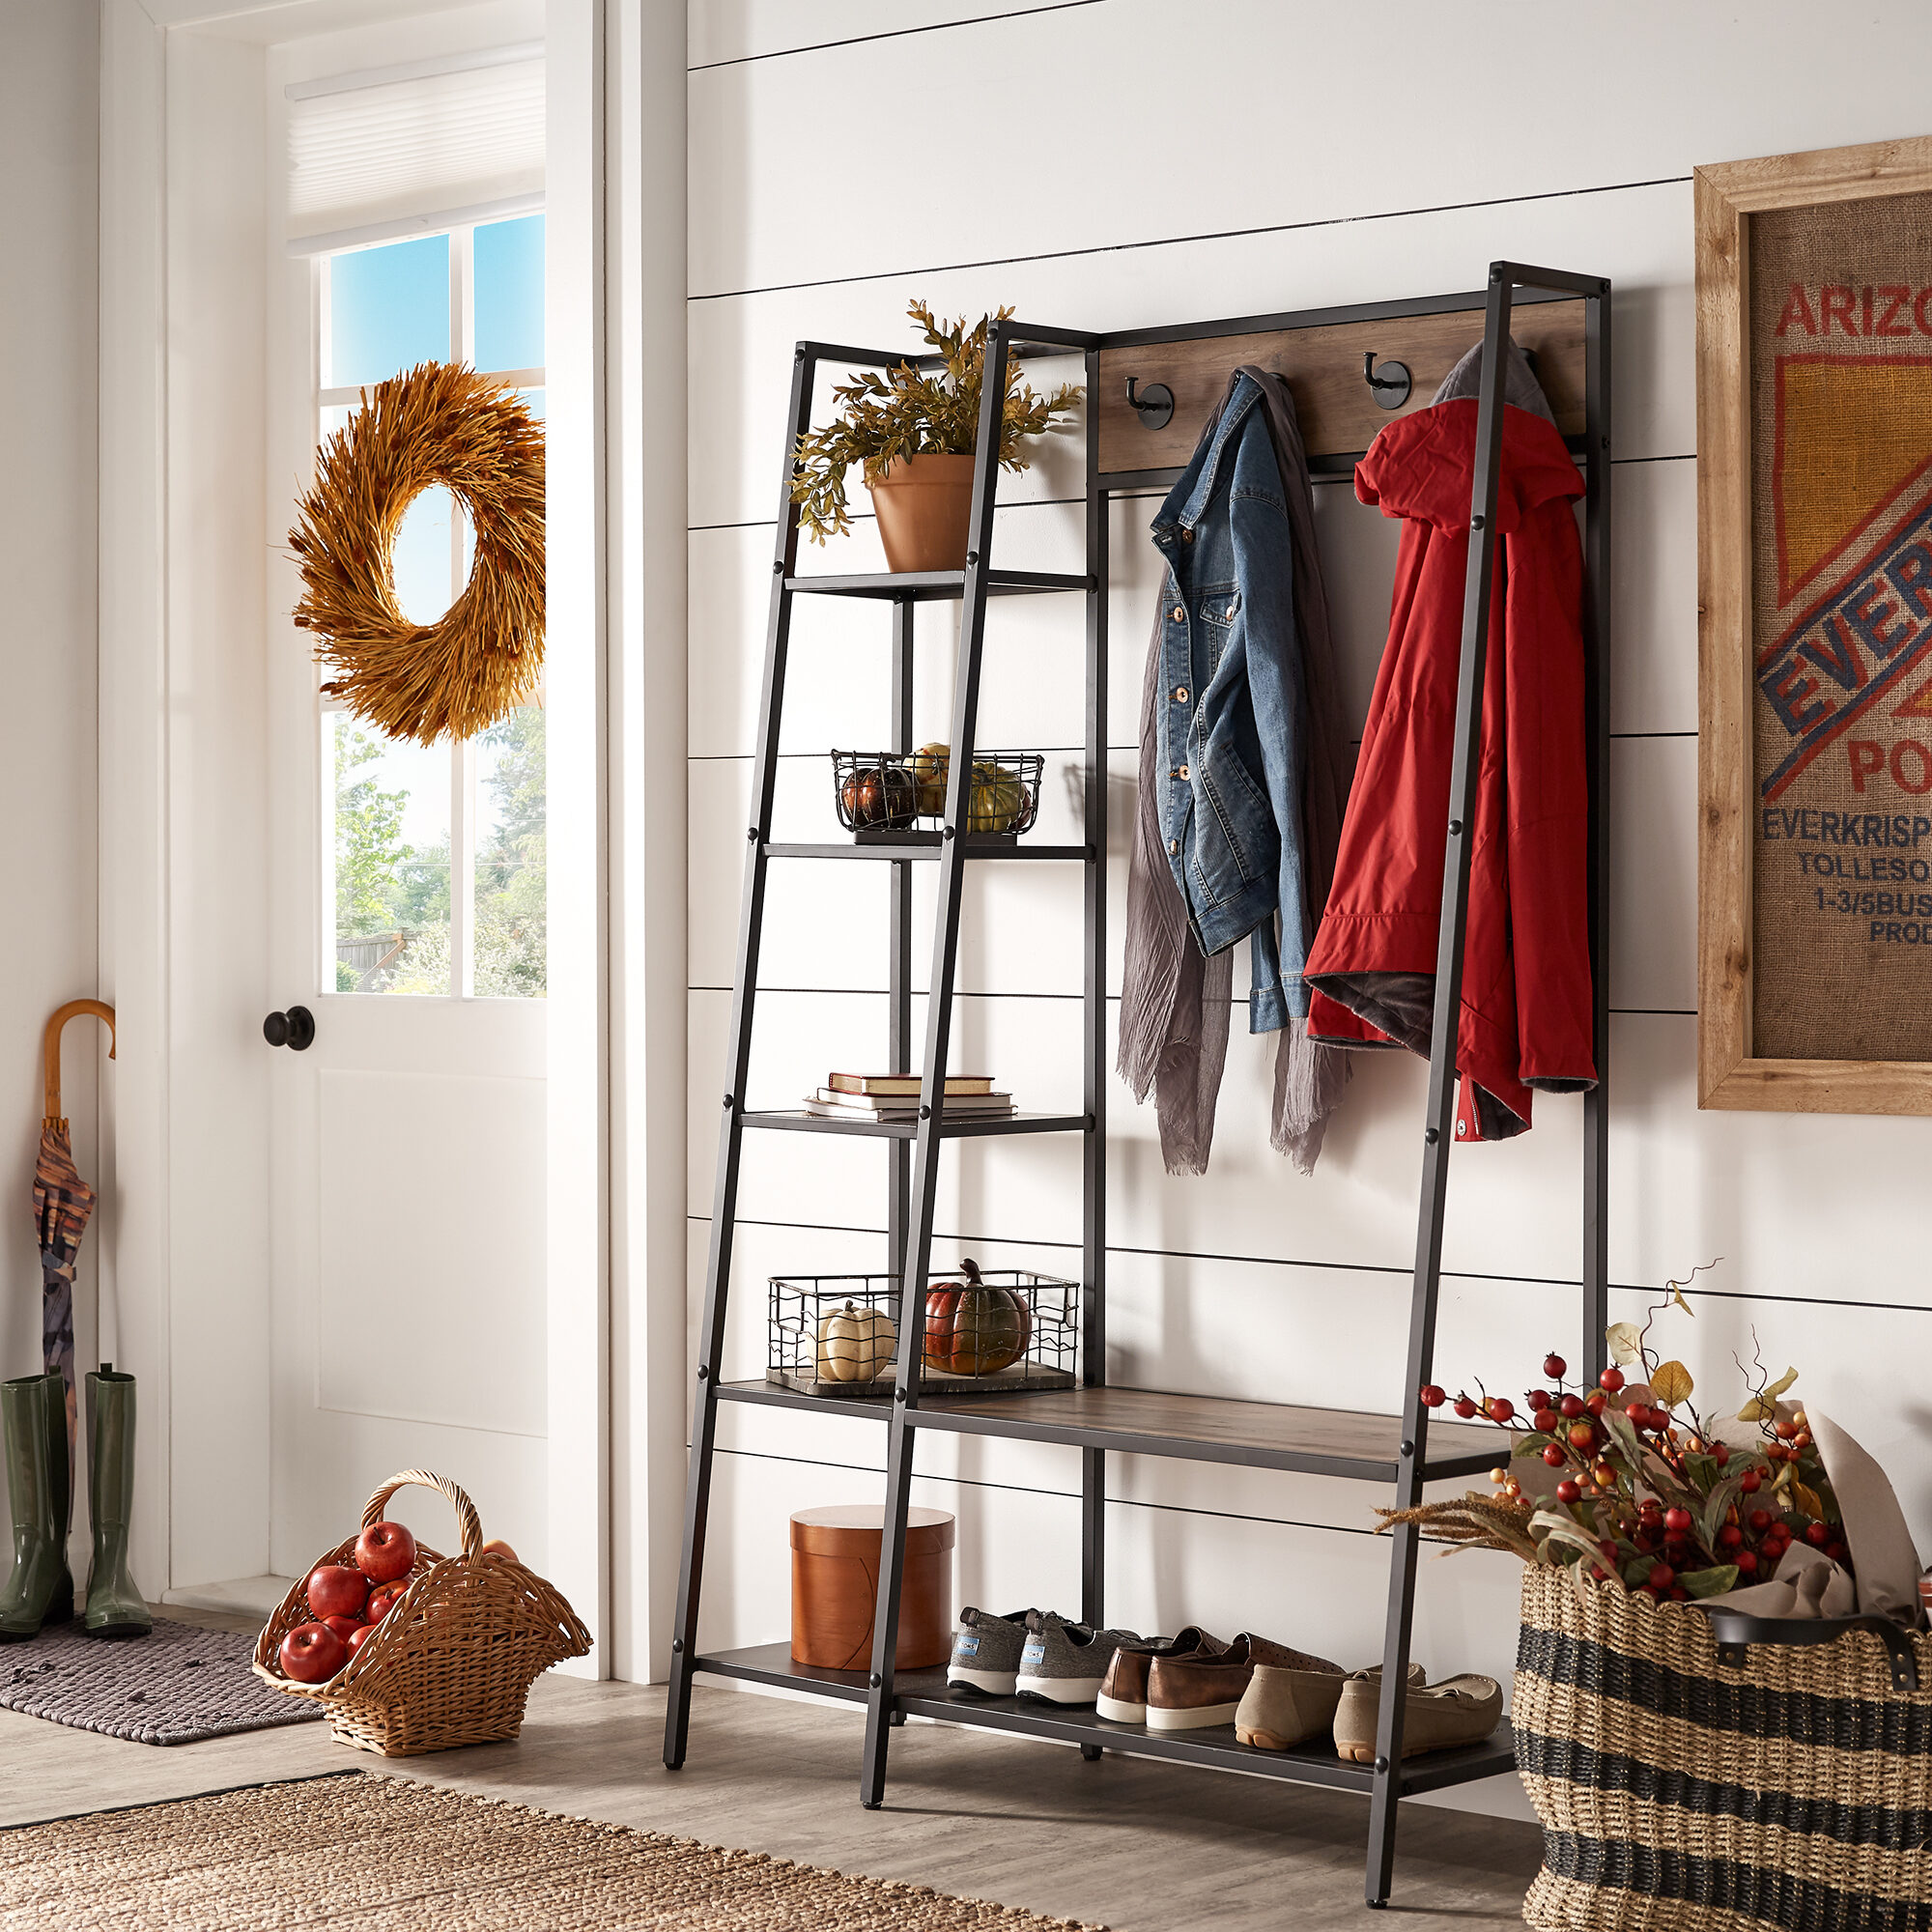 The second of our three back-to-school tips for parents involves rethinking the entryway. This is our Duke Matte Black Finish Metal Coat Rack with Ladder Shelf by iNSPIRE Q Modern. It comes with four coat hooks and five shelves.